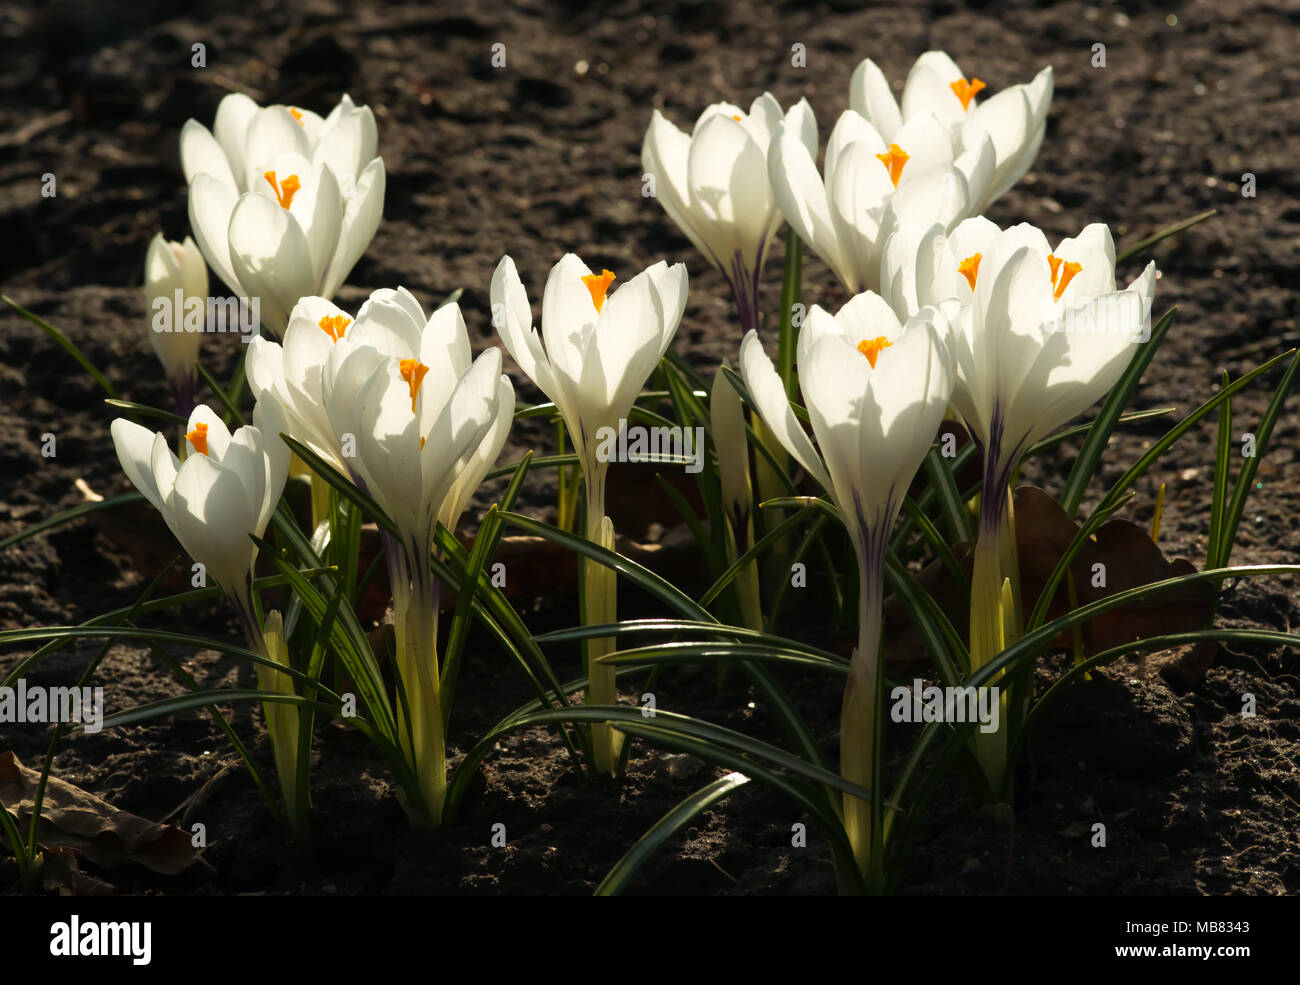 White crocuses growing on the ground in early spring first spring white crocuses growing on the ground in early spring first spring flowers blooming in garden spring meadow full of white crocuses bunch of crocuses mightylinksfo